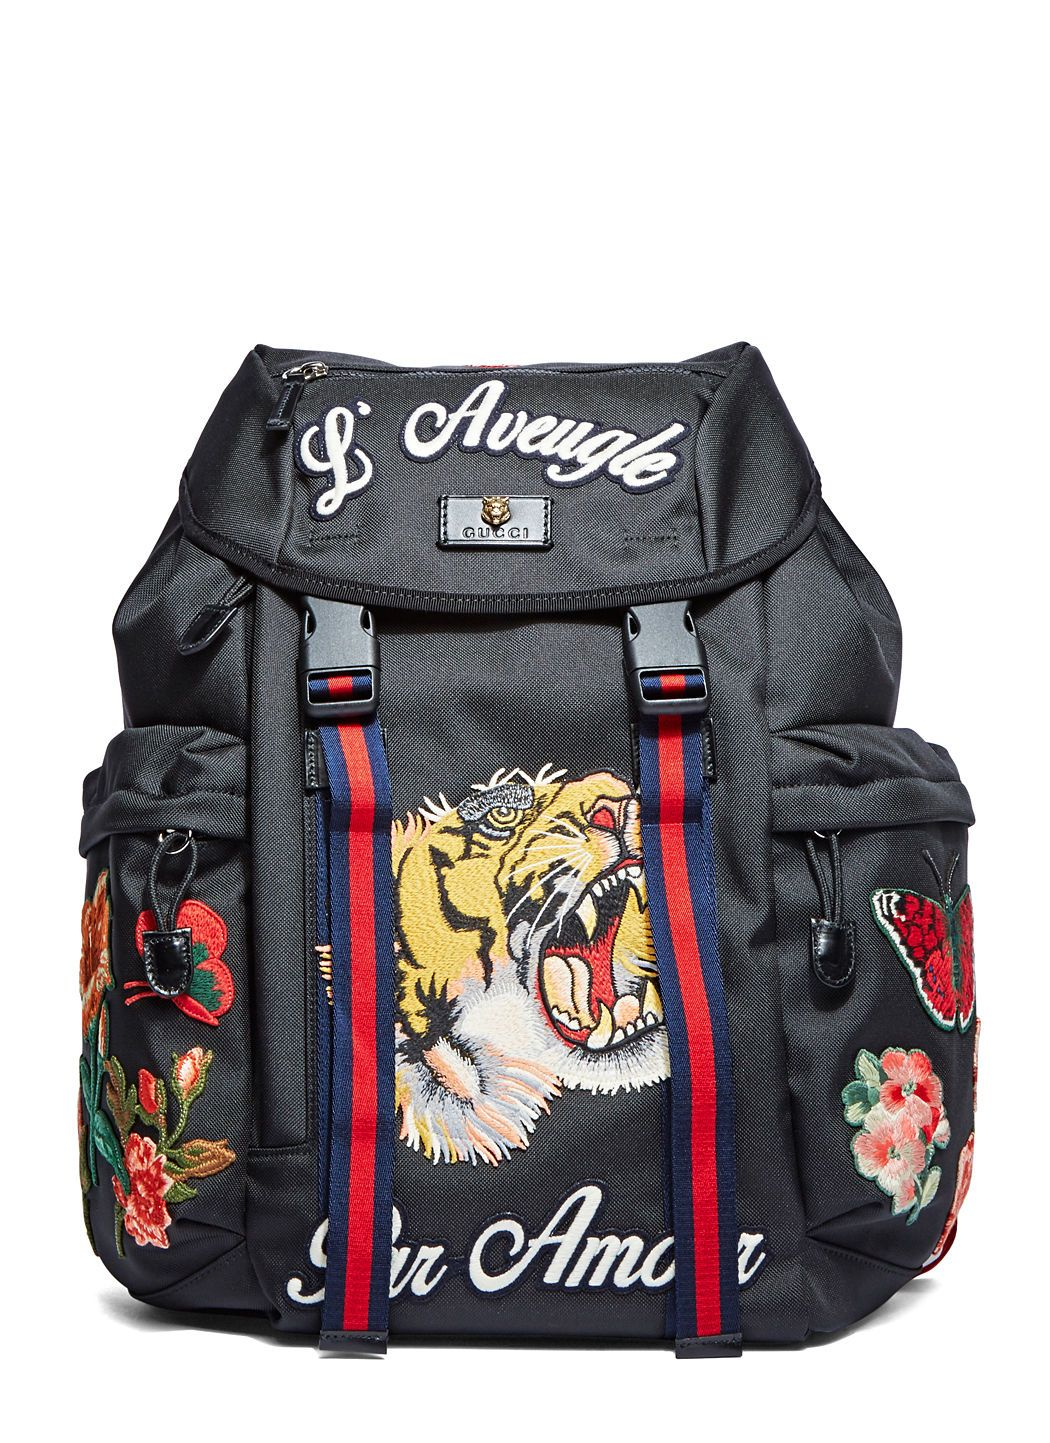 50ab8d260f81 GUCCI Men'S Zaino Embroidered Patch Canvas Backpack In Black. #gucci #bags  #leather #canvas #backpacks #cotton #